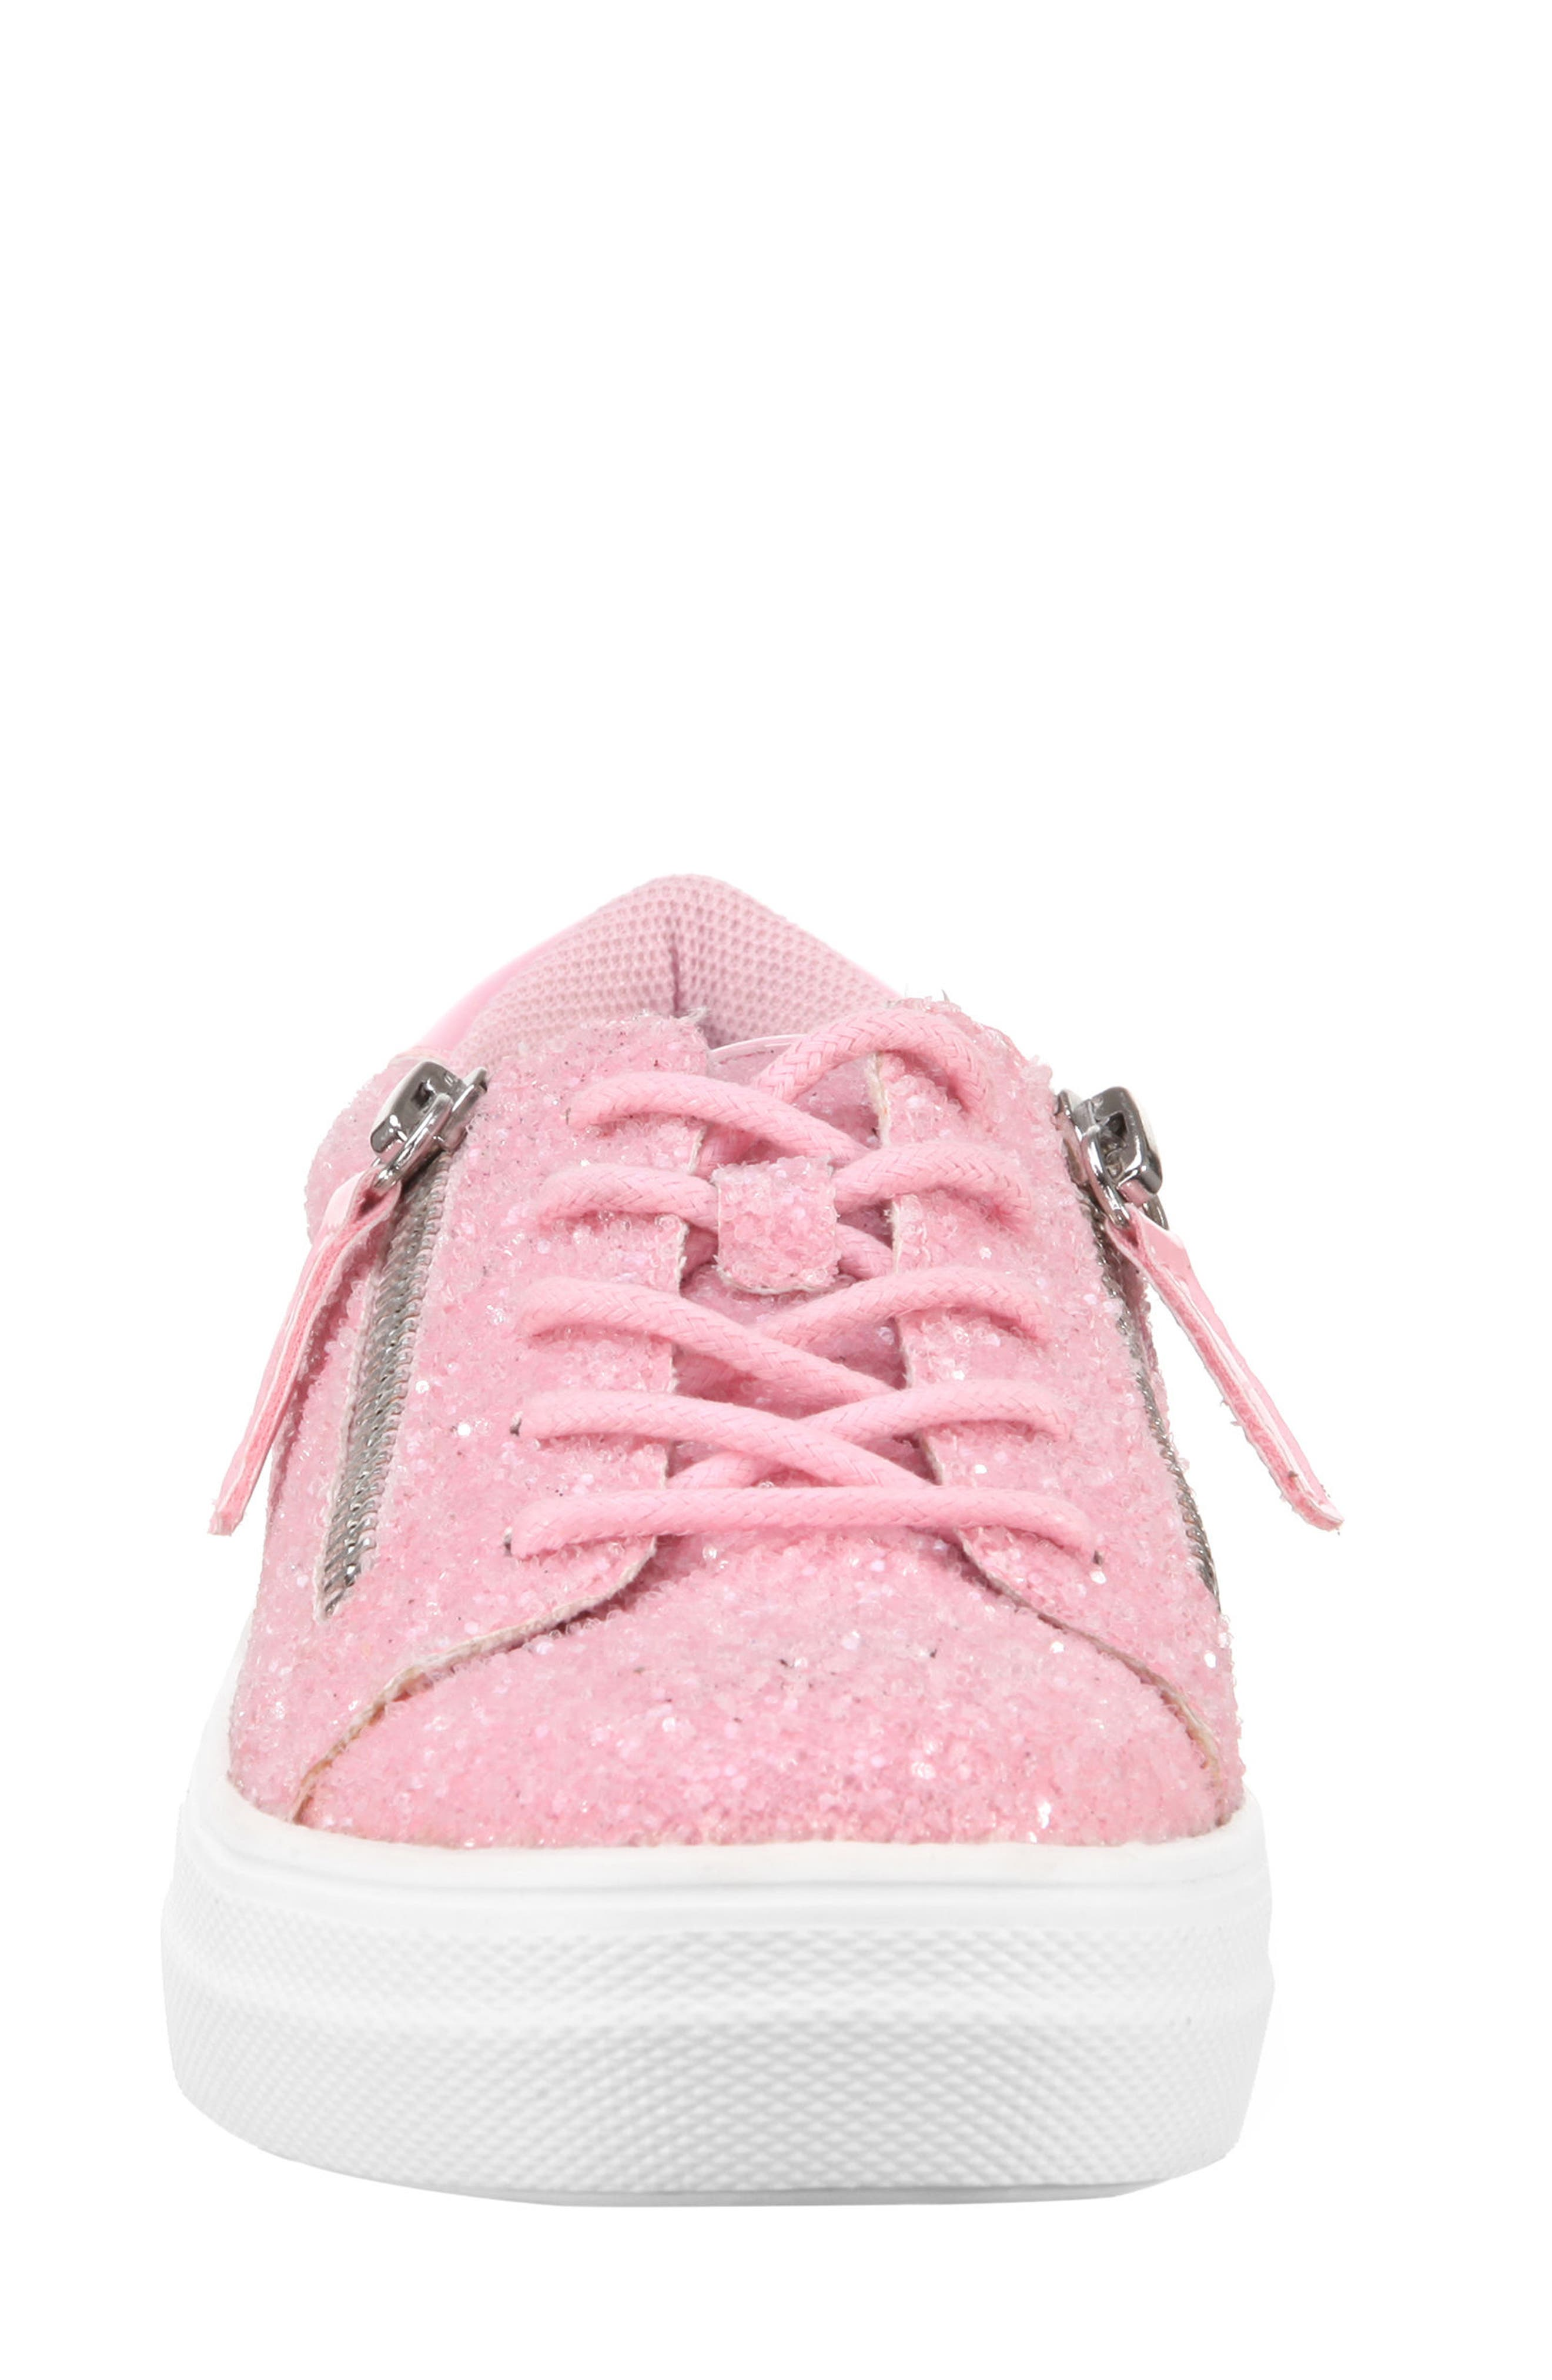 Jennalyn Glitter Sneaker,                             Alternate thumbnail 4, color,                             Light Pink Chunky Glitter